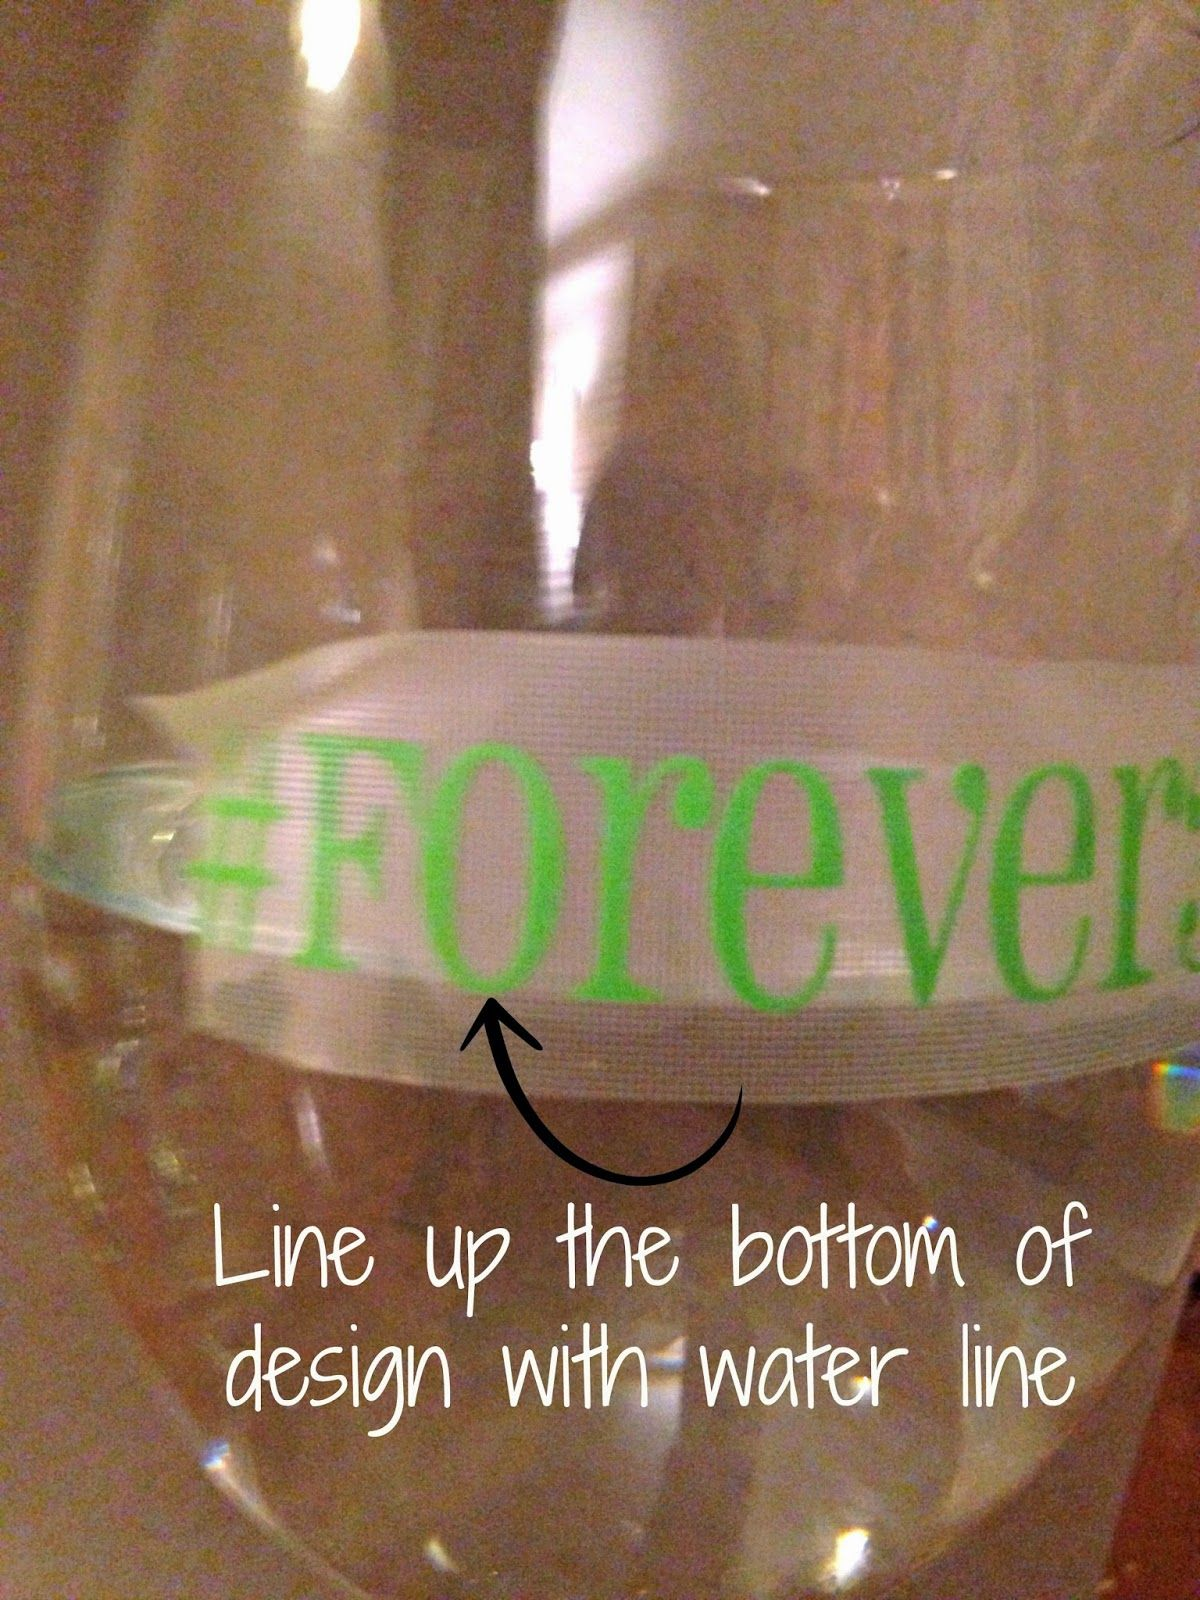 Cheap vinyl for crafts - Putting Vinyl On Wine Glasses 7 Tips For Success Silhouette School